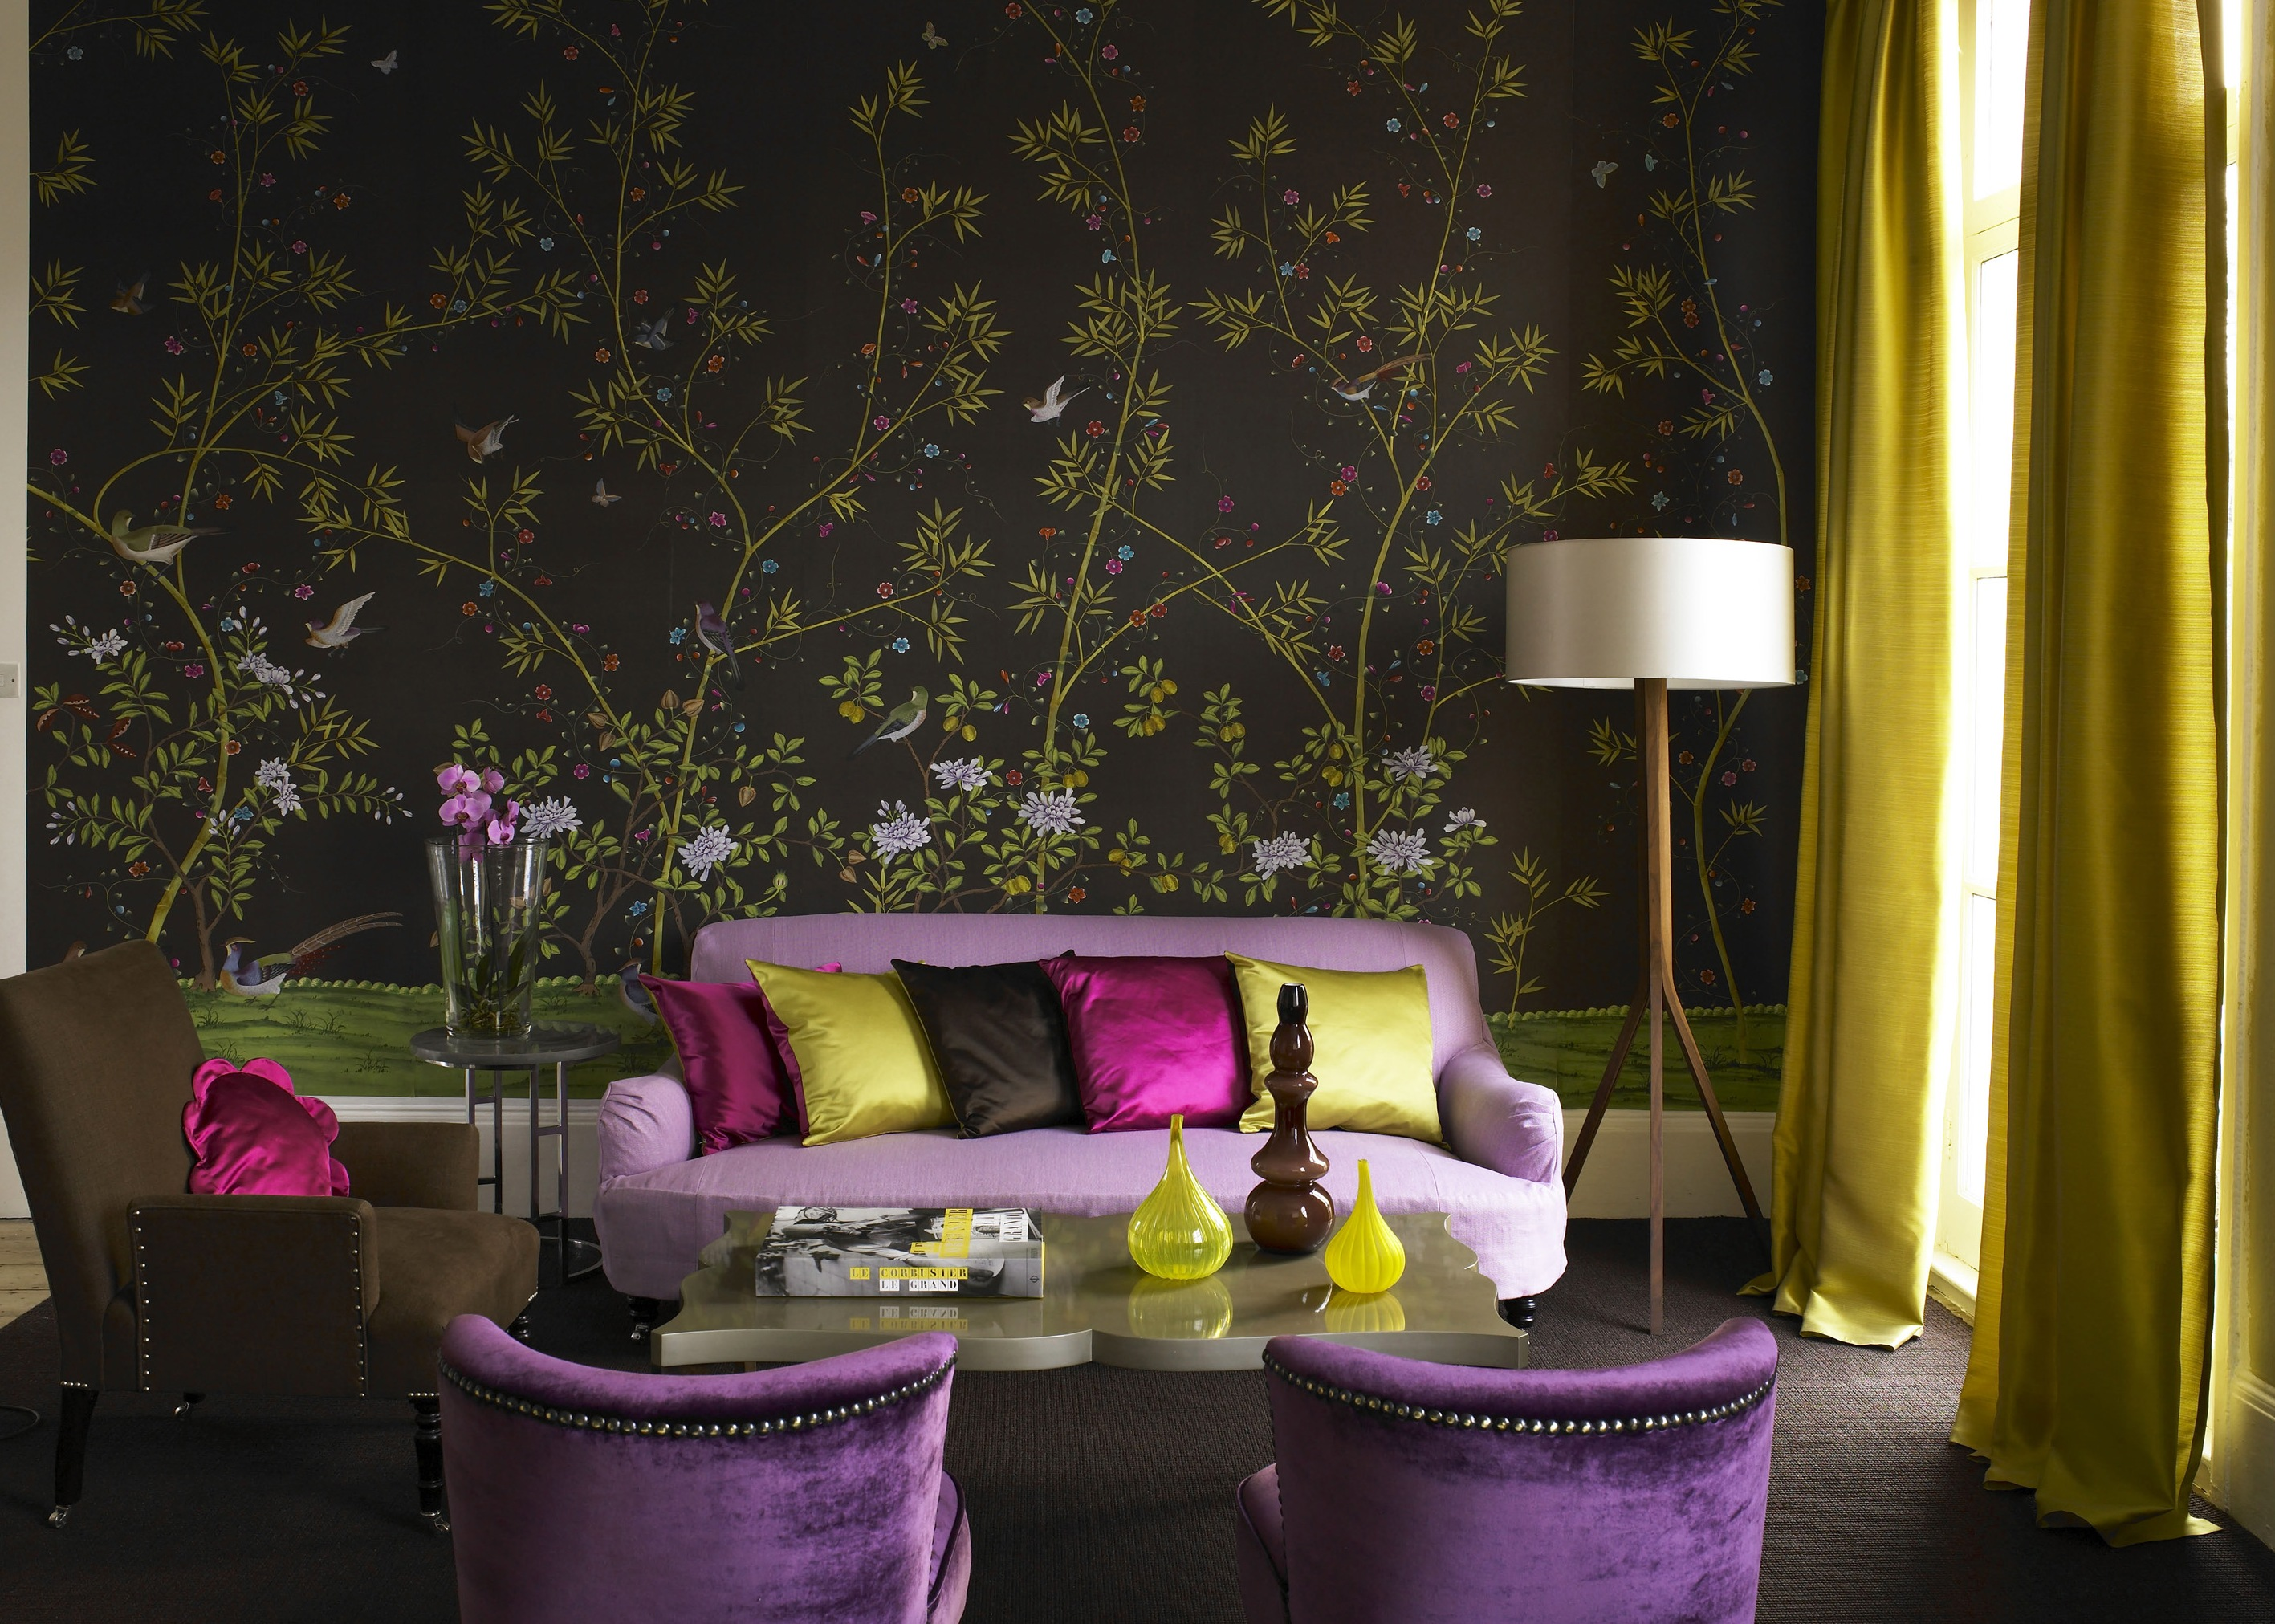 how to choose wallpaper for living room wallpapers for living room design ideas in uk - Wallpaper Design Ideas